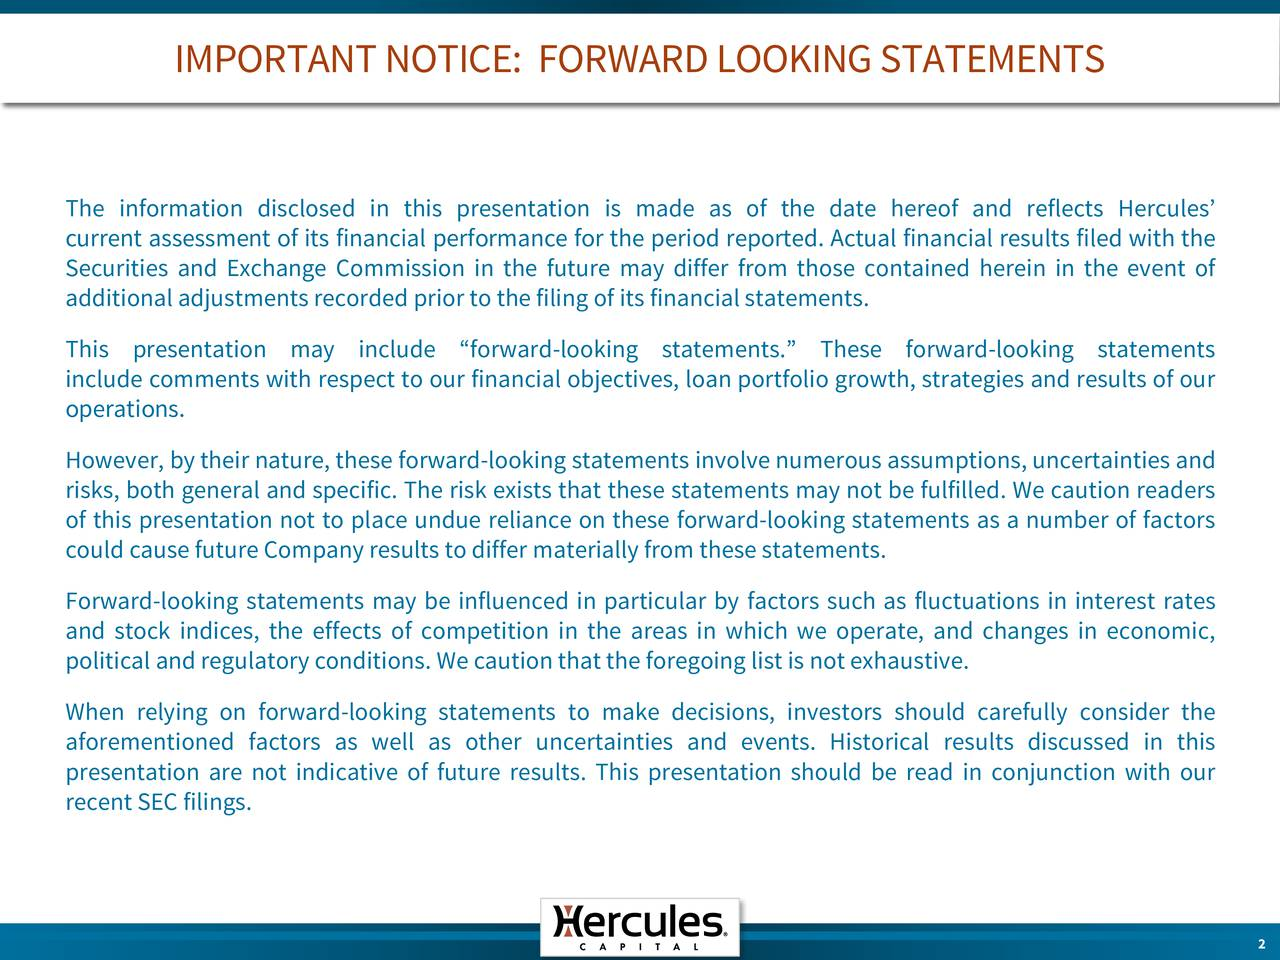 The information disclosed in this presentation is made as of the date hereof and reflects Hercules current assessment of its financial performance for the period reported. Actual financial results filed with the Securities and Exchange Commission in the future may differ from those contained herein in the event of additionaladjustmentsrecorded prior to thefiling of its financialstatements. This presentation may include forward-looking statements. These forward-looking statements include comments with respect to our financial objectives, loan portfolio growth, strategies and results of our operations. However, by their nature, these forward-looking statements involve numerous assumptions, uncertainties and risks, both general and specific. The risk exists that these statements may not be fulfilled. We caution readers of this presentation not to place undue reliance on these forward-looking statements as a number of factors could causefuture Companyresults to differ materiallyfrom these statements. Forward-looking statements may be influenced in particular by factors such as fluctuations in interest rates and stock indices, the effects of competition in the areas in which we operate, and changes in economic, political andregulatoryconditions. We cautionthatthe foregoing list is not exhaustive. When relying on forward-looking statements to make decisions, investors should carefully consider the aforementioned factors as well as other uncertainties and events. Historical results discussed in this presentation are not indicative of future results. This presentation should be read in conjunction with our recent SEC filings.